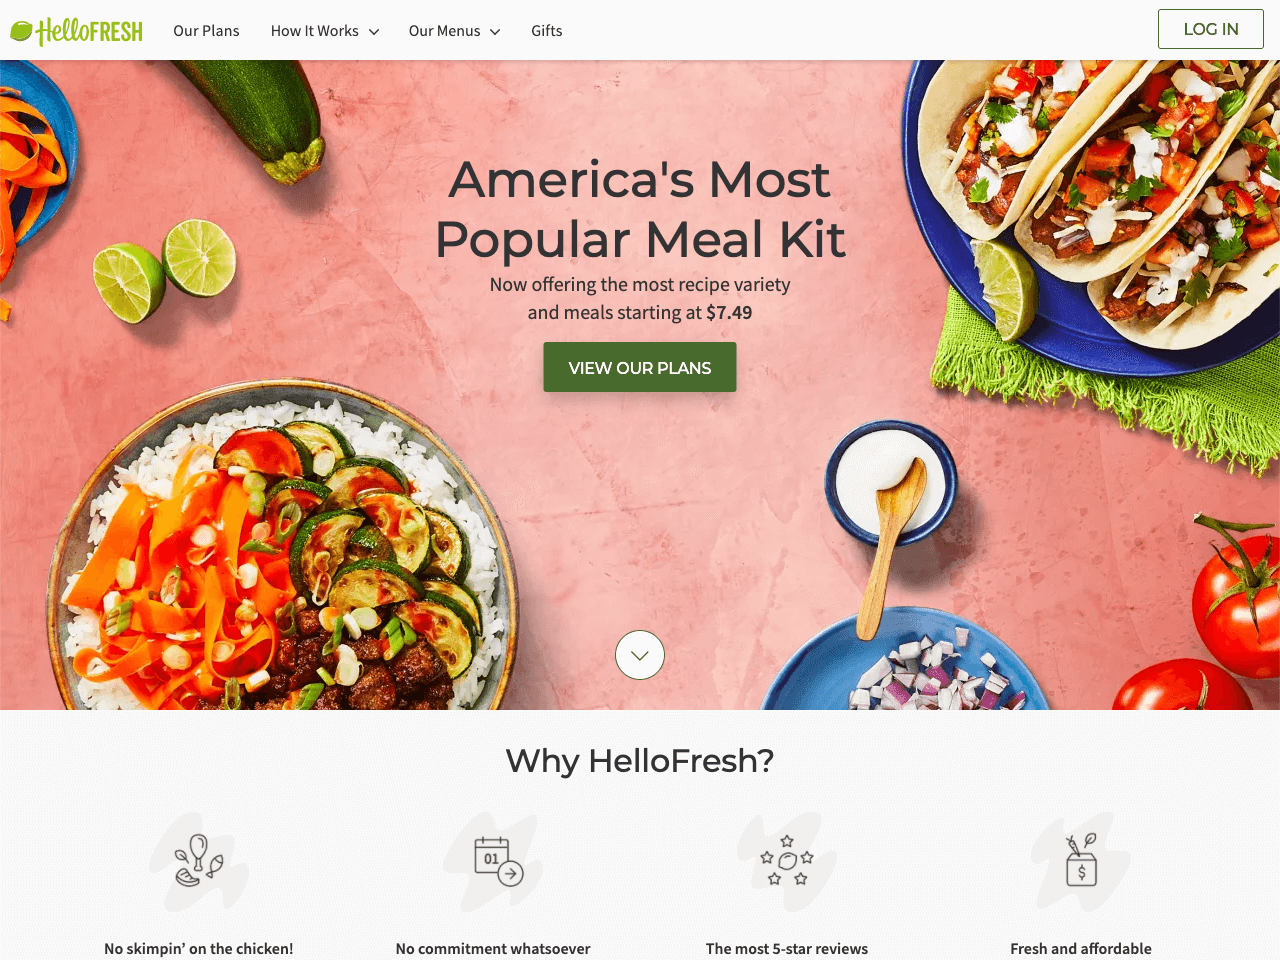 HelloFresh highlight their unique selling point on a landing page